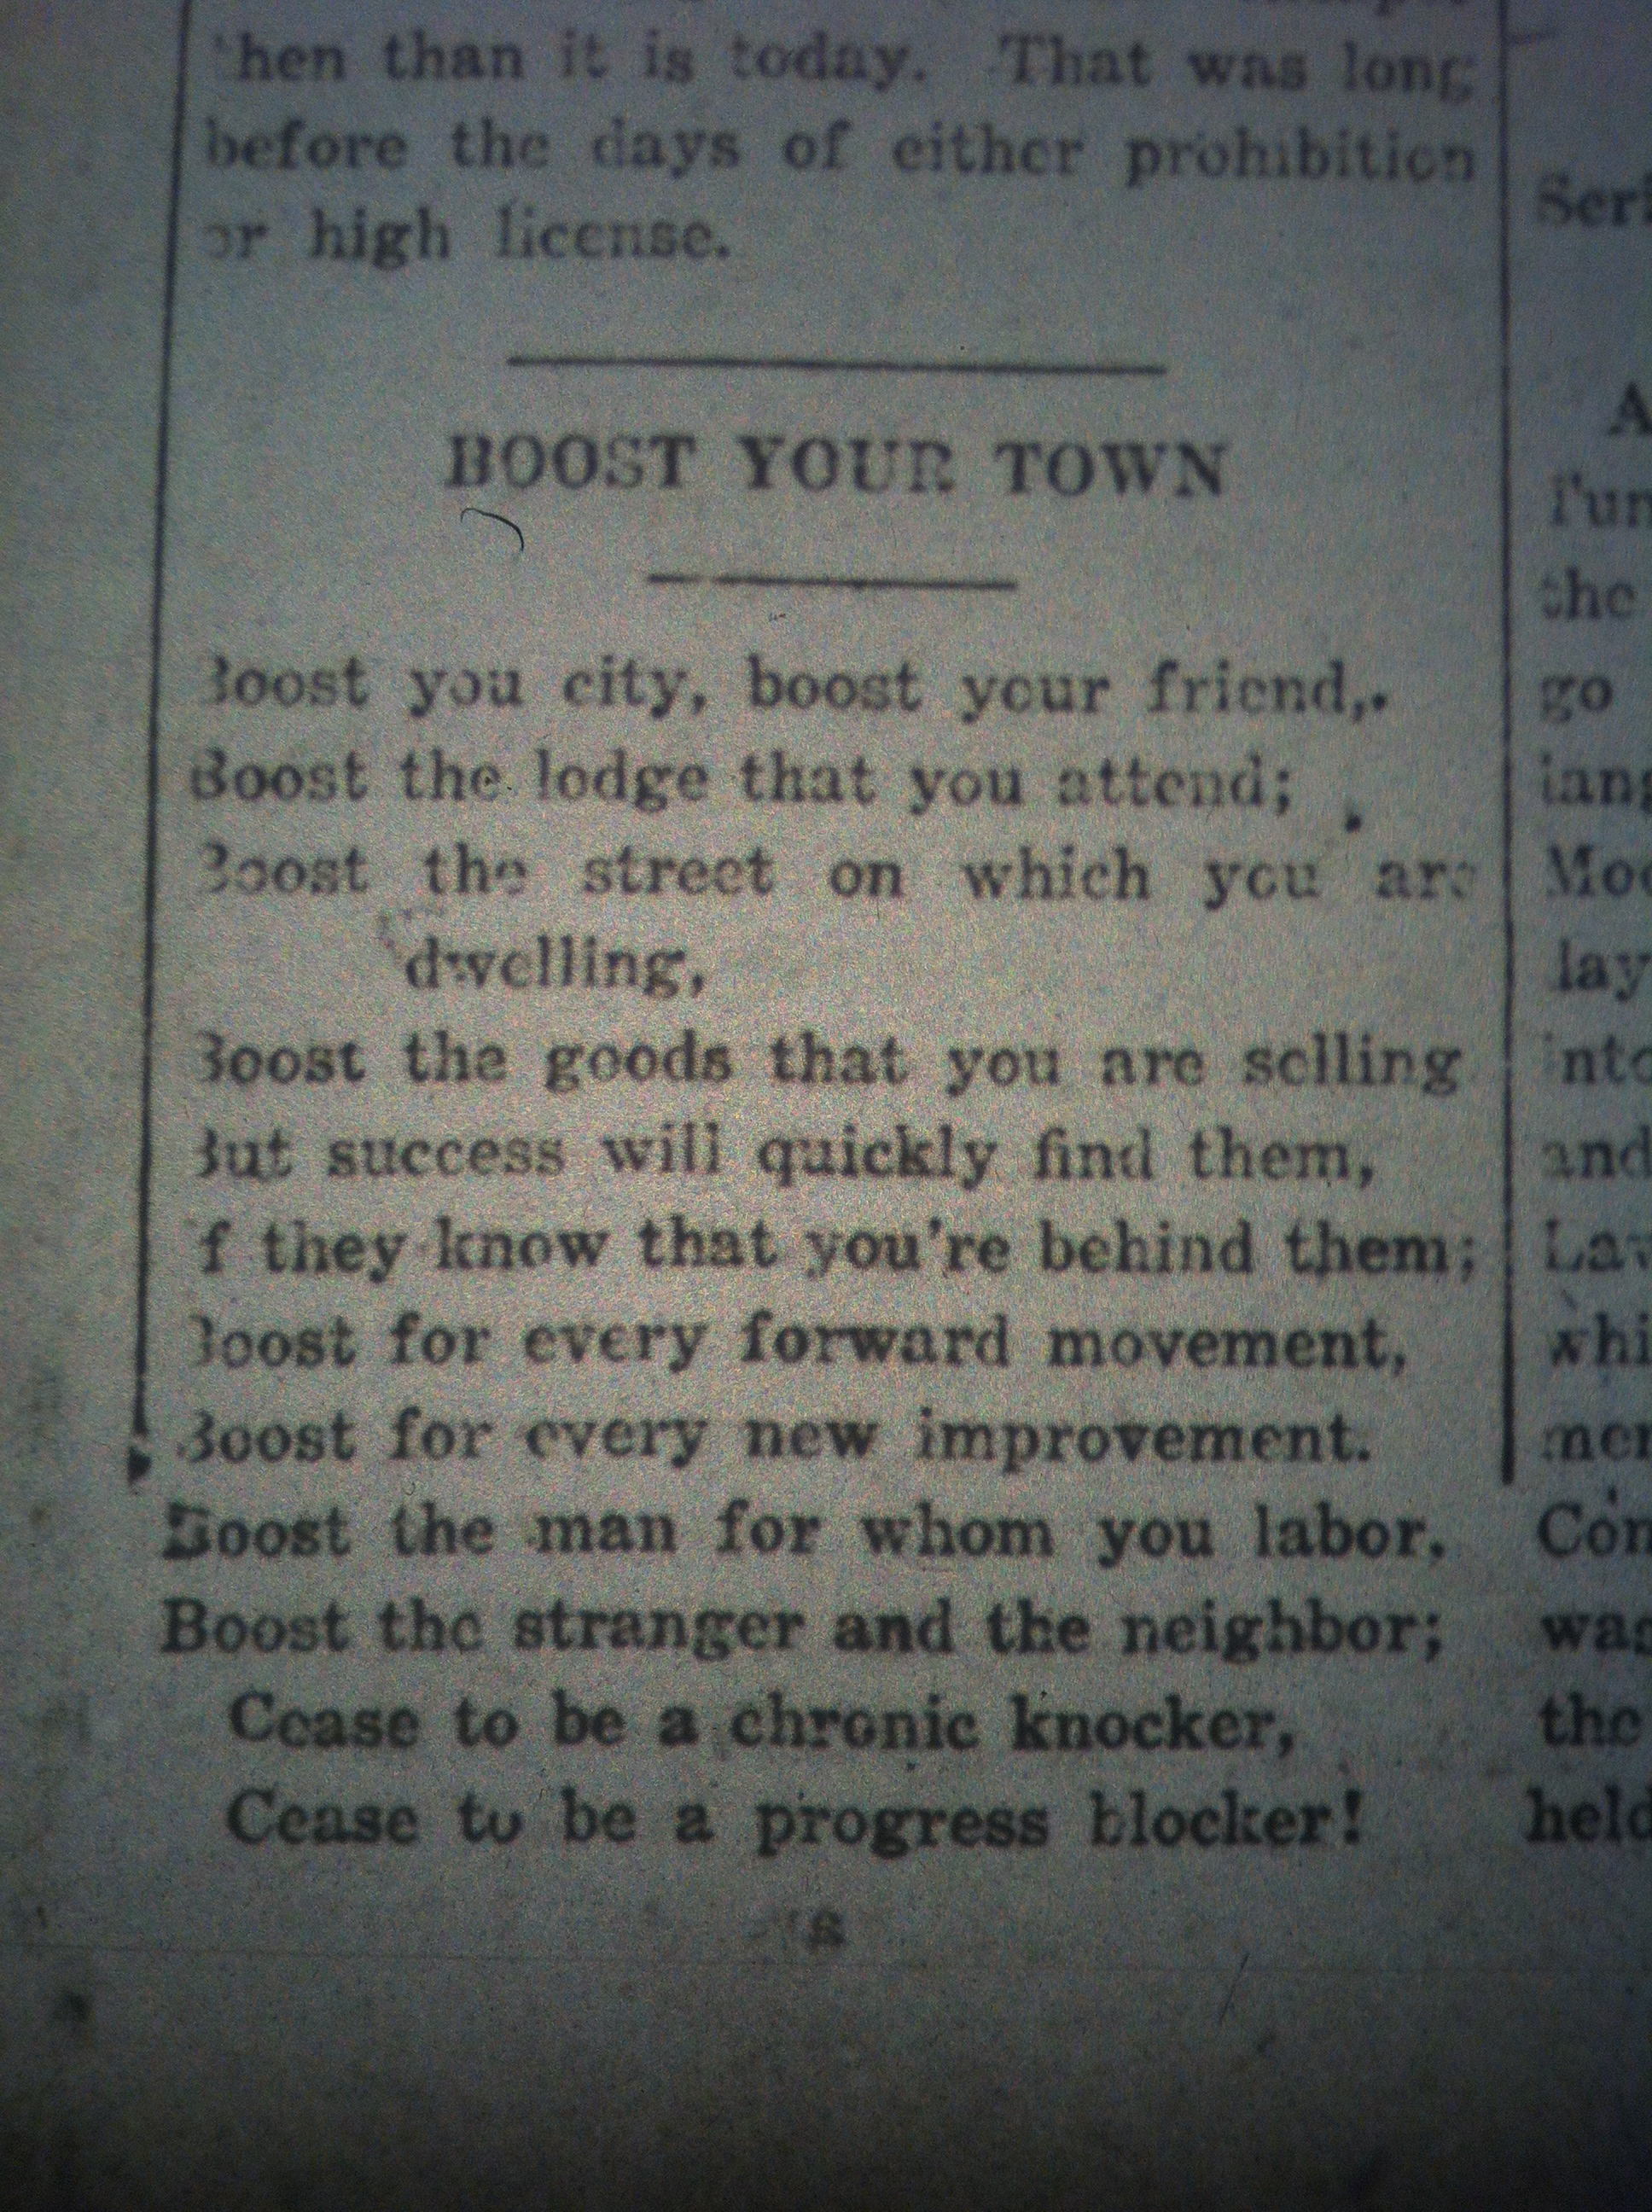 Boost Your Town LD 01.11.1917.JPG